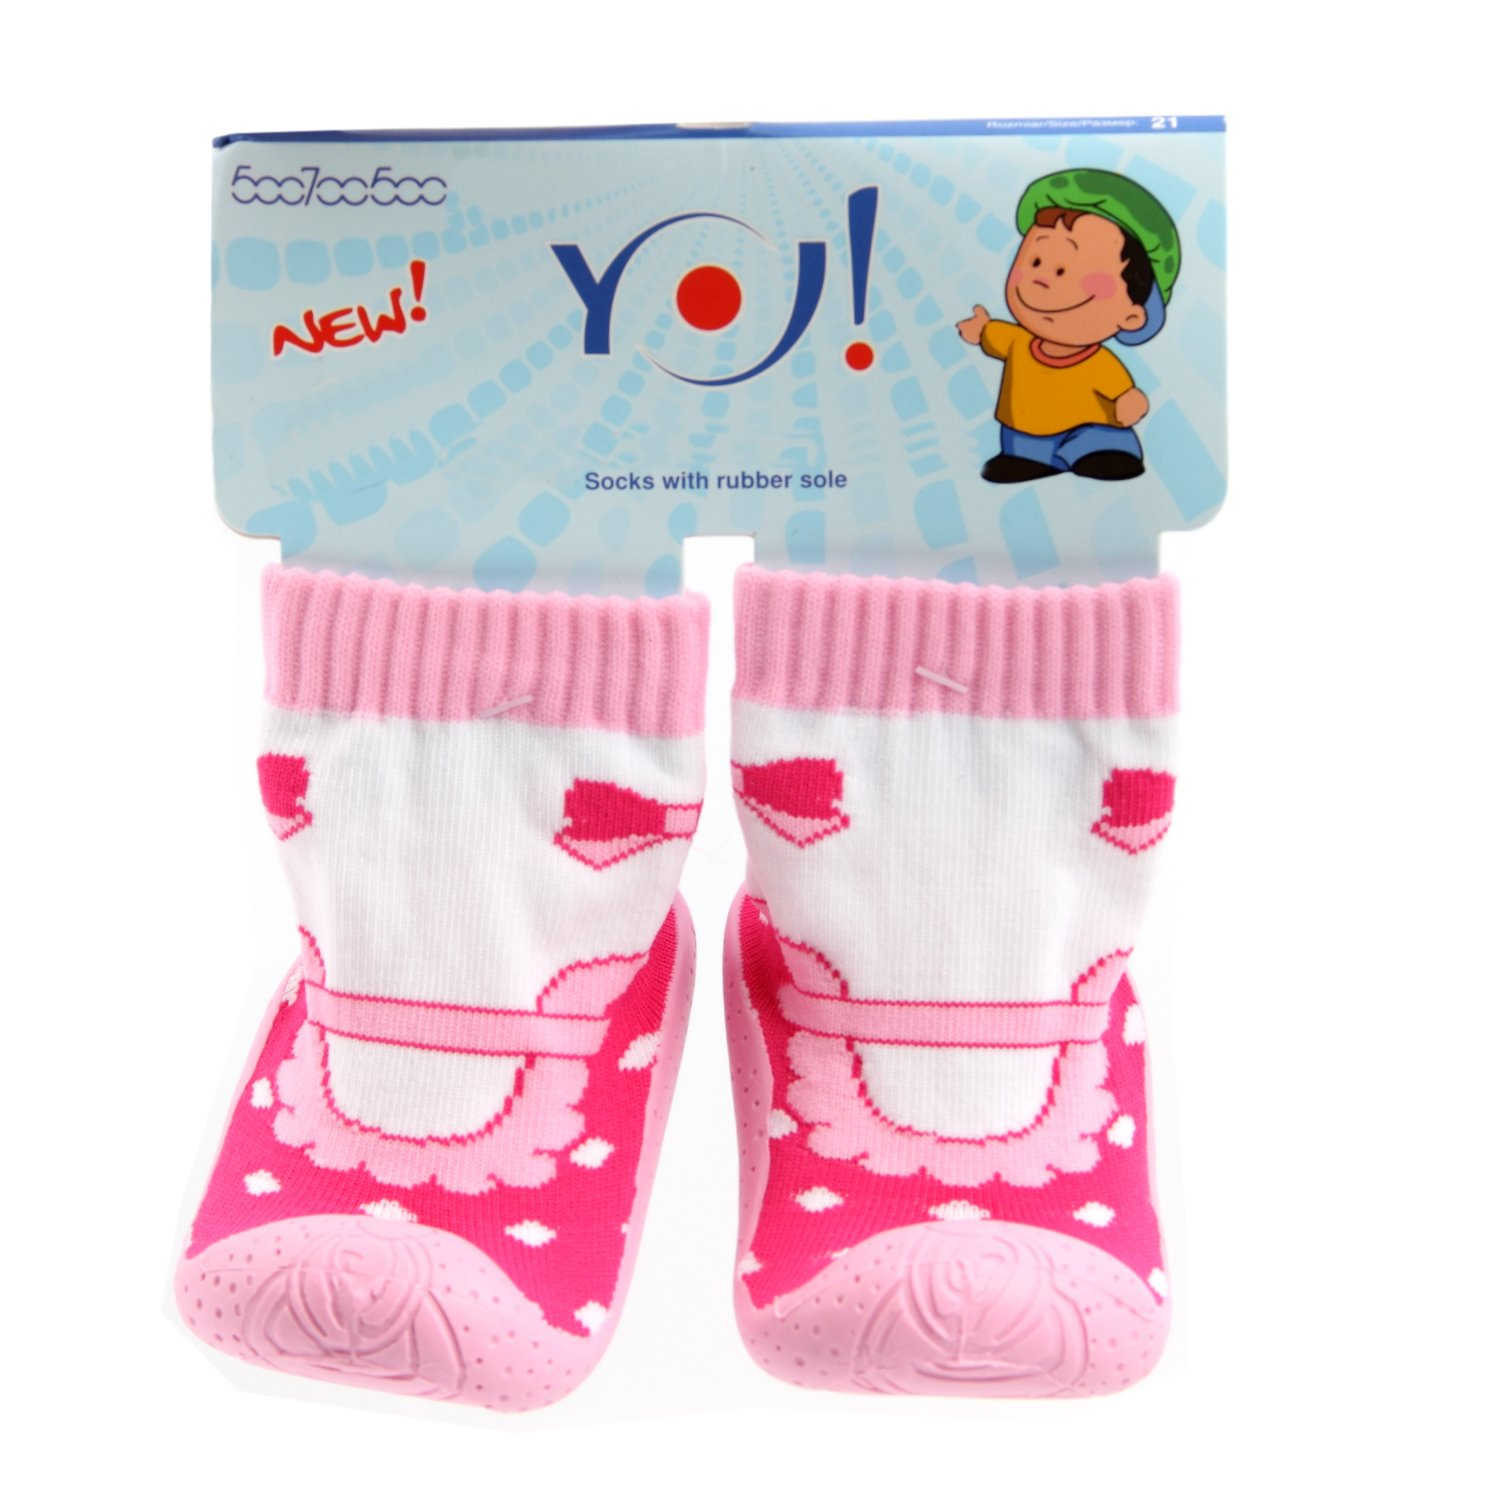 OB 002 Children s Slipper Socks with Rubber Soles Pink Dots Size 5